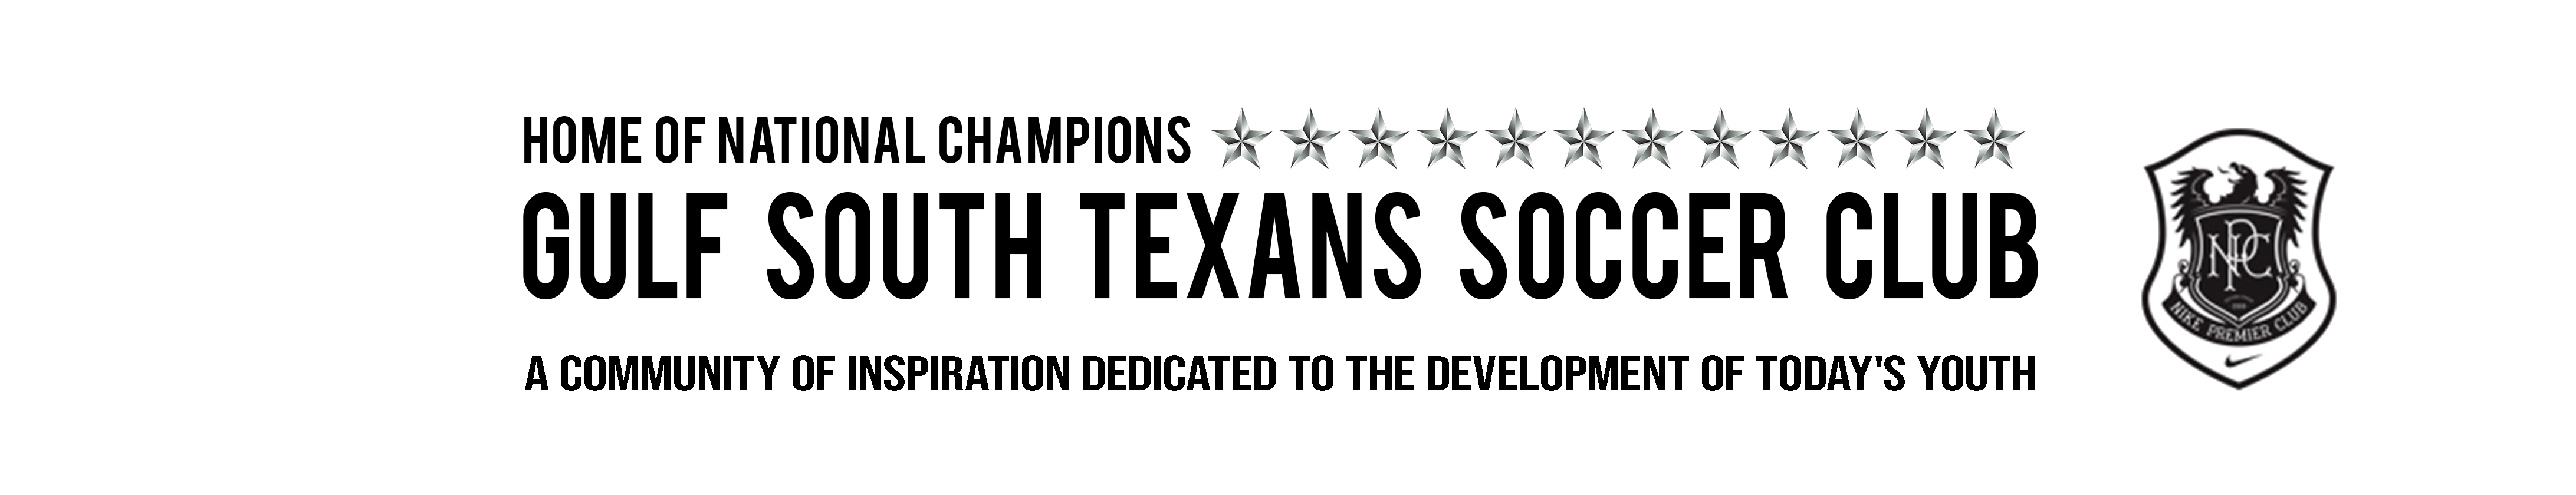 2020 br texans web banner space transpa